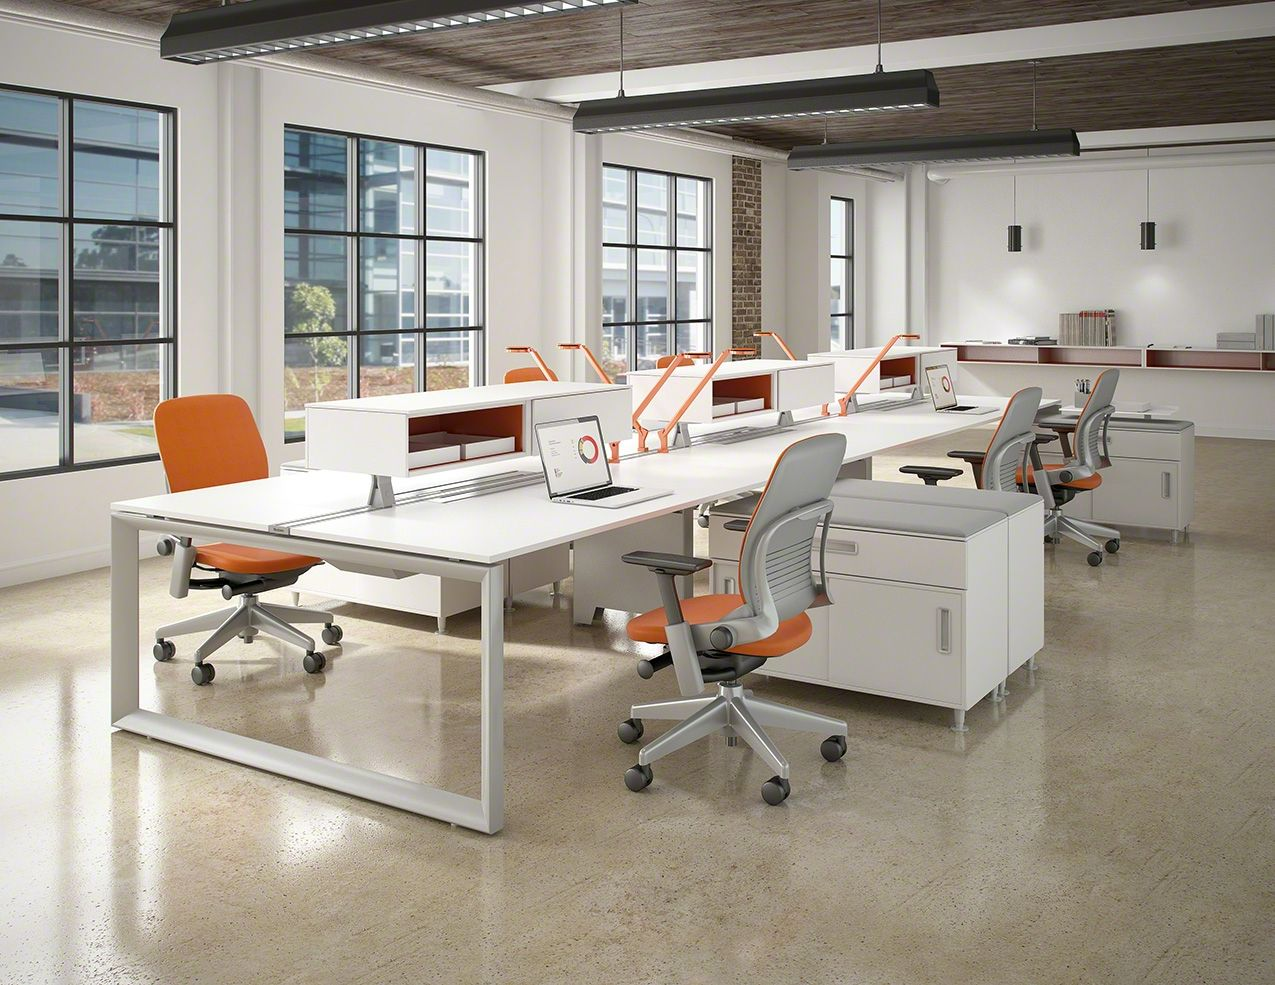 Leap Office space design, Office interiors, Office furniture